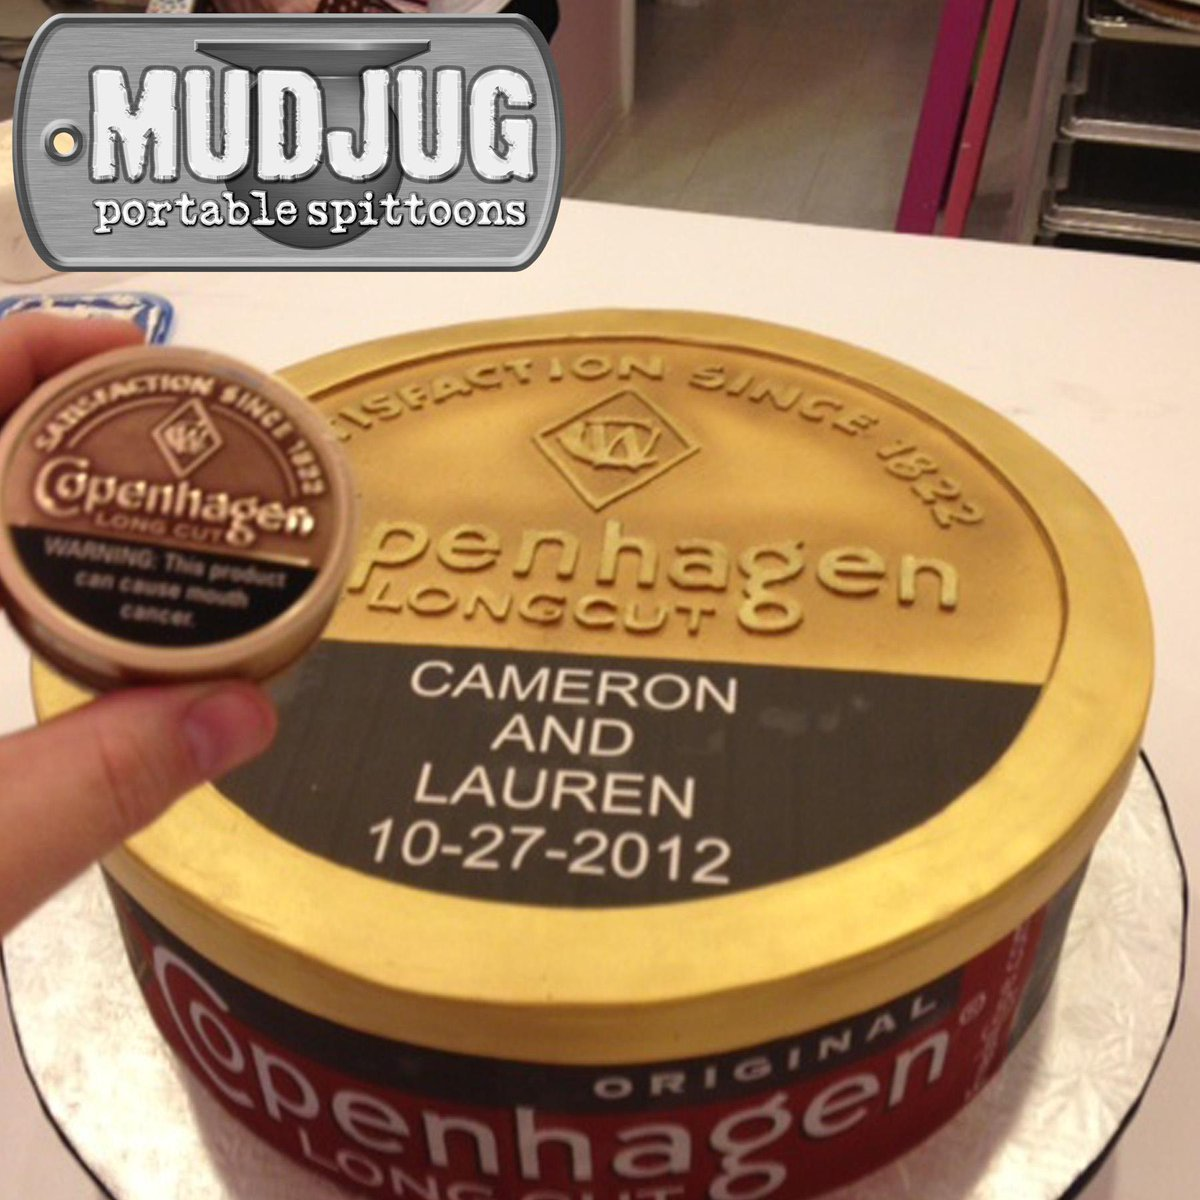 Dippindewitt On Twitter Mudjug1 Anyone Want Some Copenhagen Cake Mudjug Http T Co L04yt0uo0z Holy I This As A Birthday